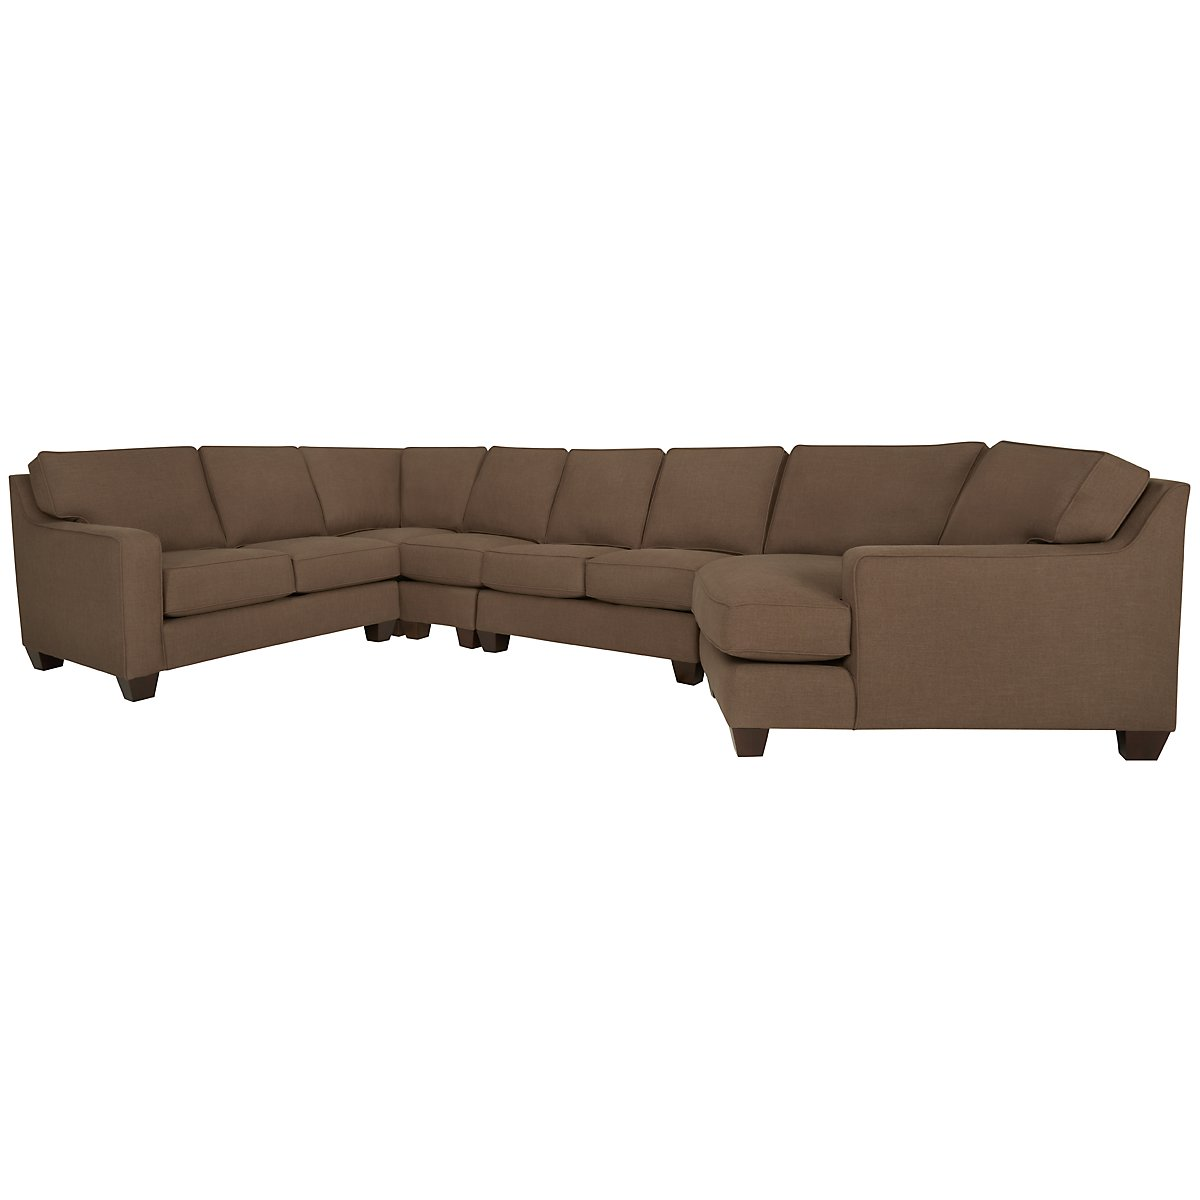 York Dark Brown Fabric Large Right Cuddler Sectional